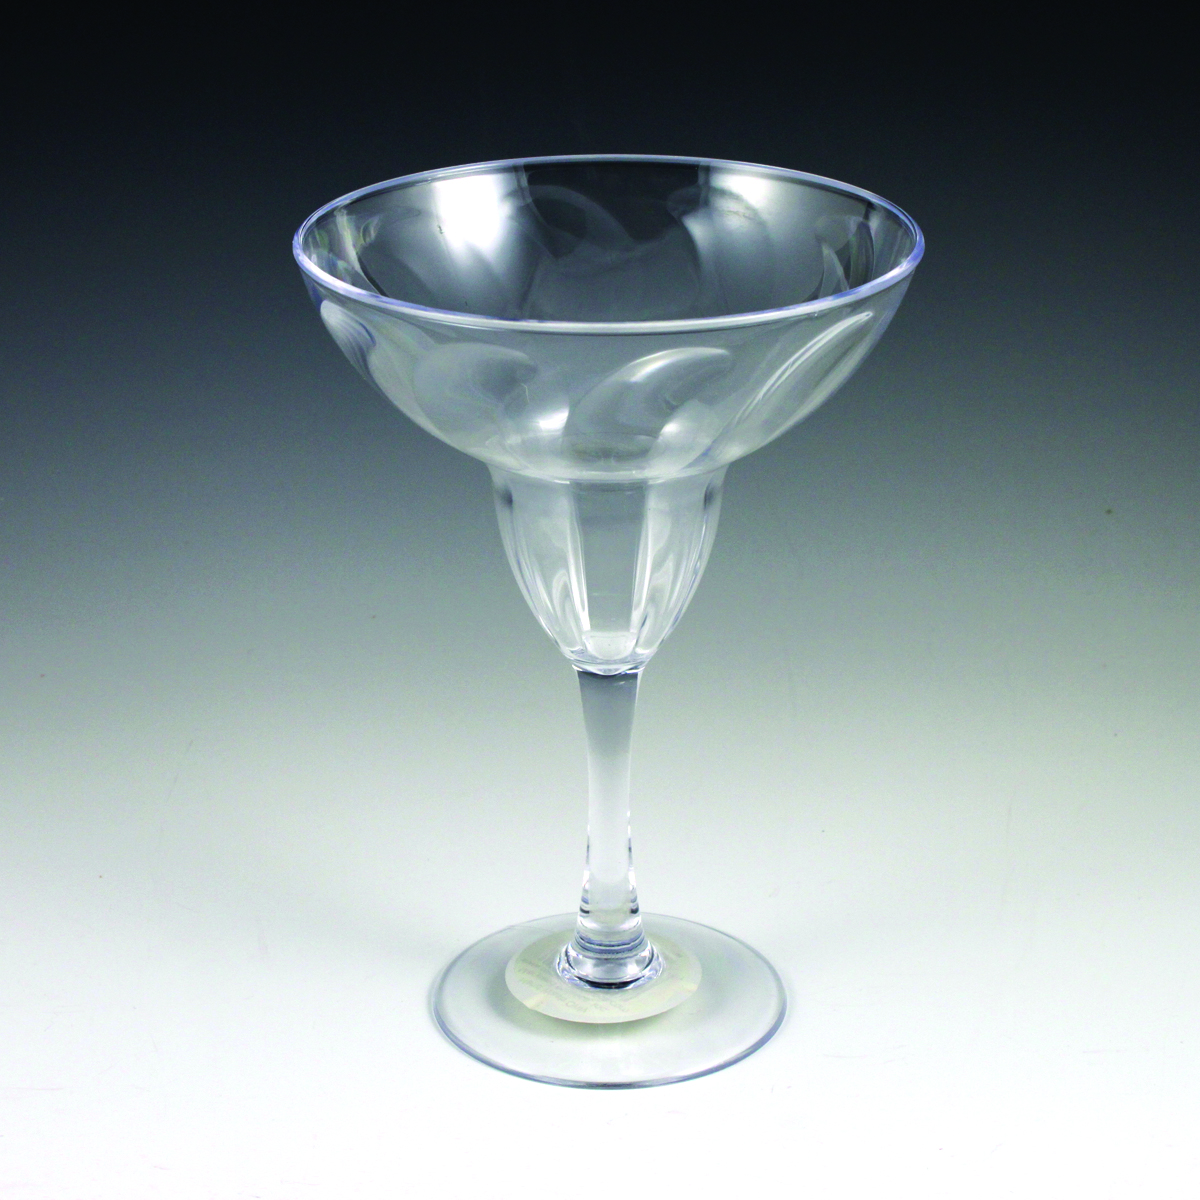 ... Maryland Plastics, Inc. | 12 oz. Sovereign Heavy Duty Margarita Glass